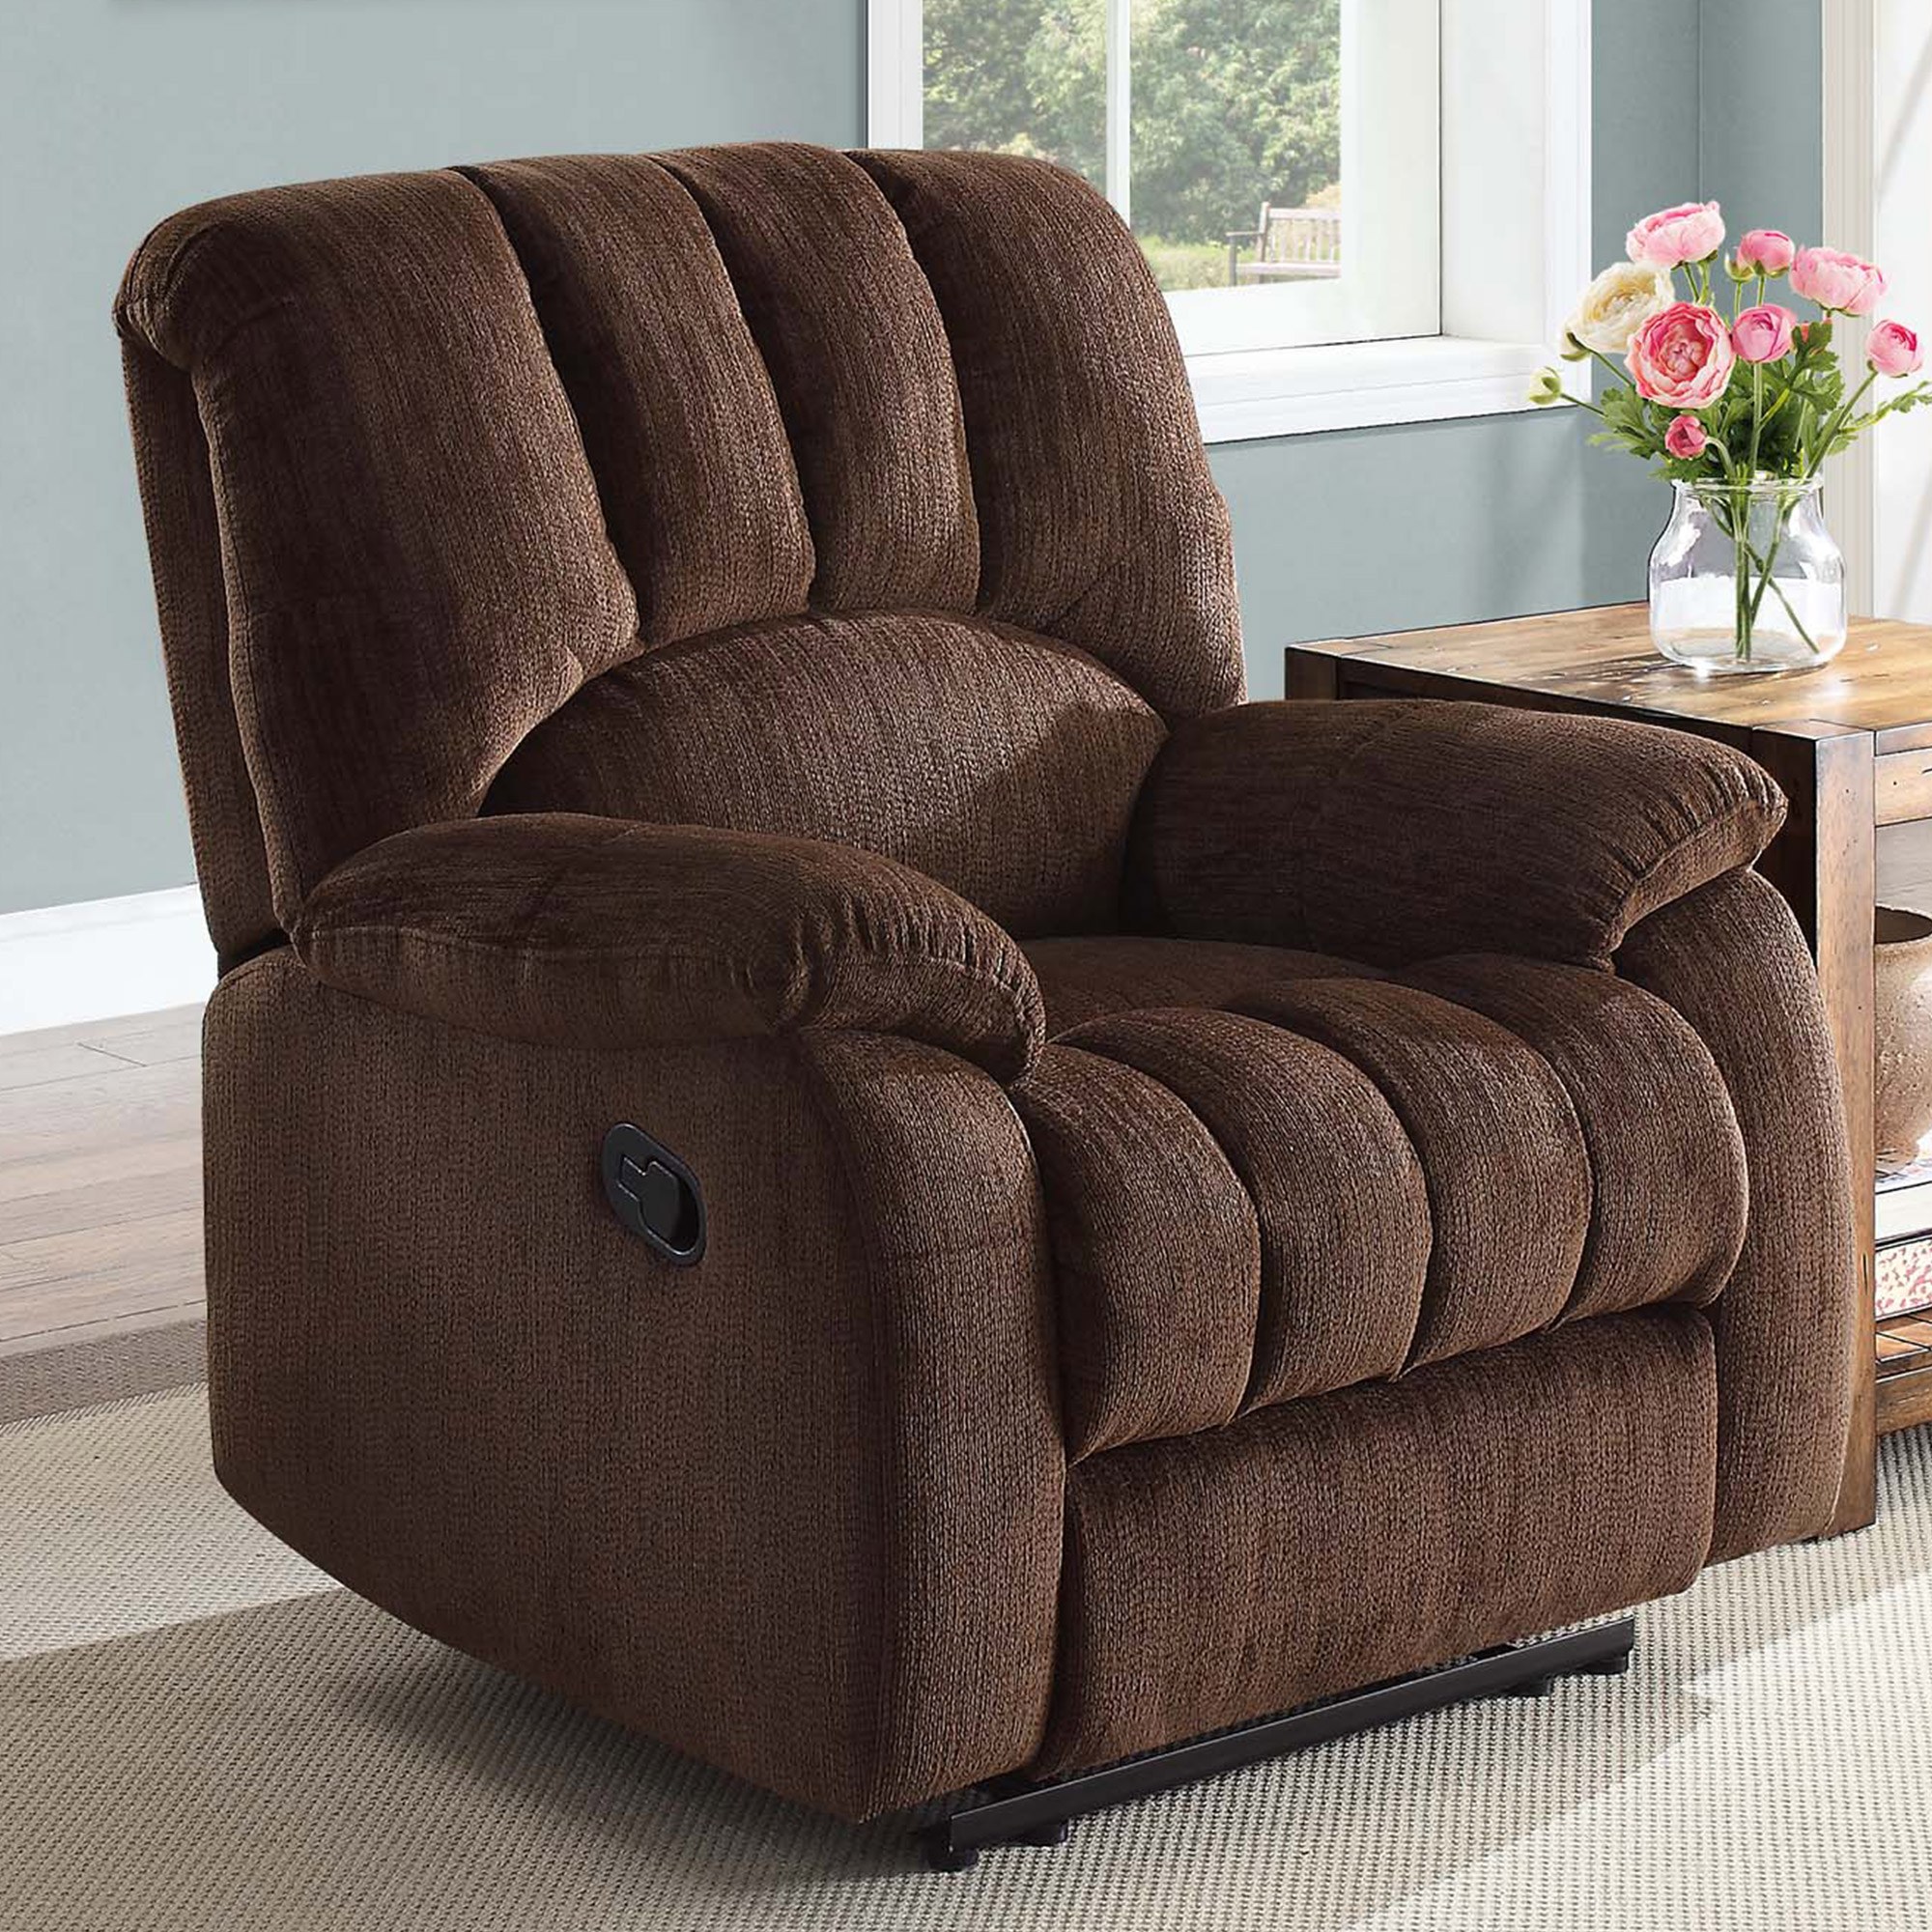 Delicieux Details About Recliner Chair Small Seat Pocketed Comfort Coils Brown Fabric  Home Furniture